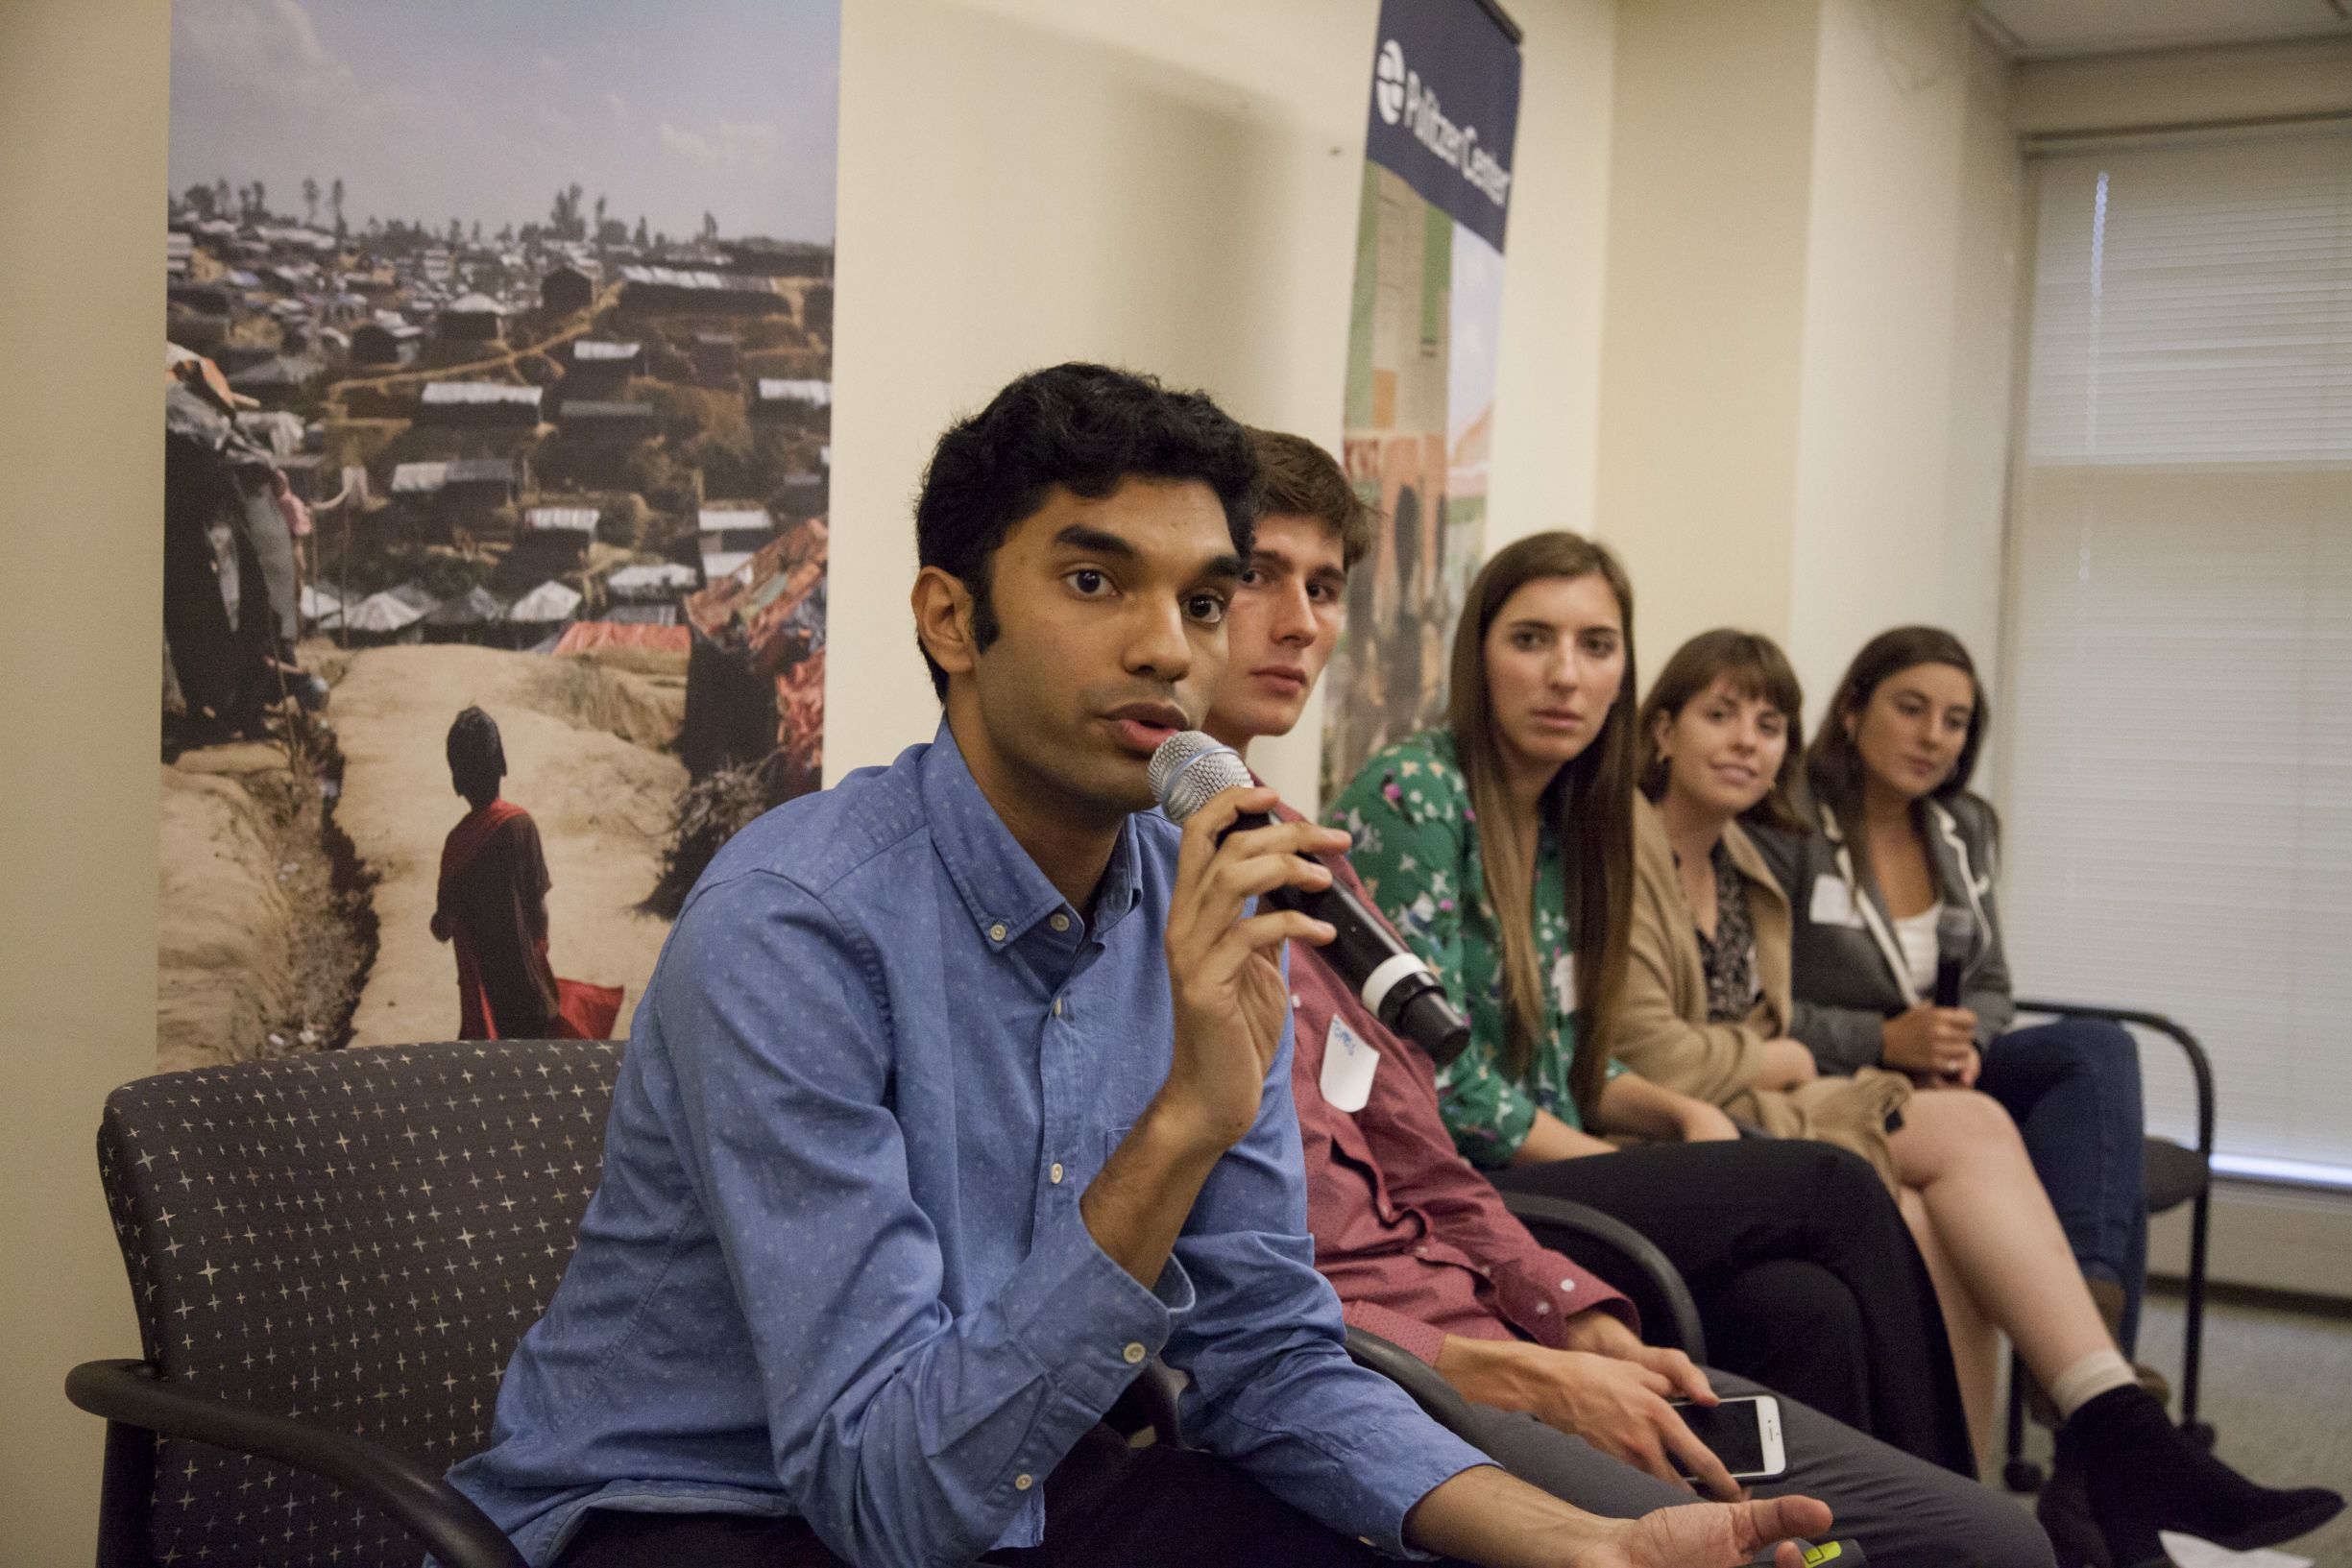 Rohan Naik (Yale University), Tomas Woodall Posada (Forsyth Technical Community College), Kiley Price (Wake Forest University), Meg Vatterot (University of Missouri), and Jacqueline Flynn (Texas Christian University) present on climate change and the environment. Image by Jin Ding. United States, 2018.